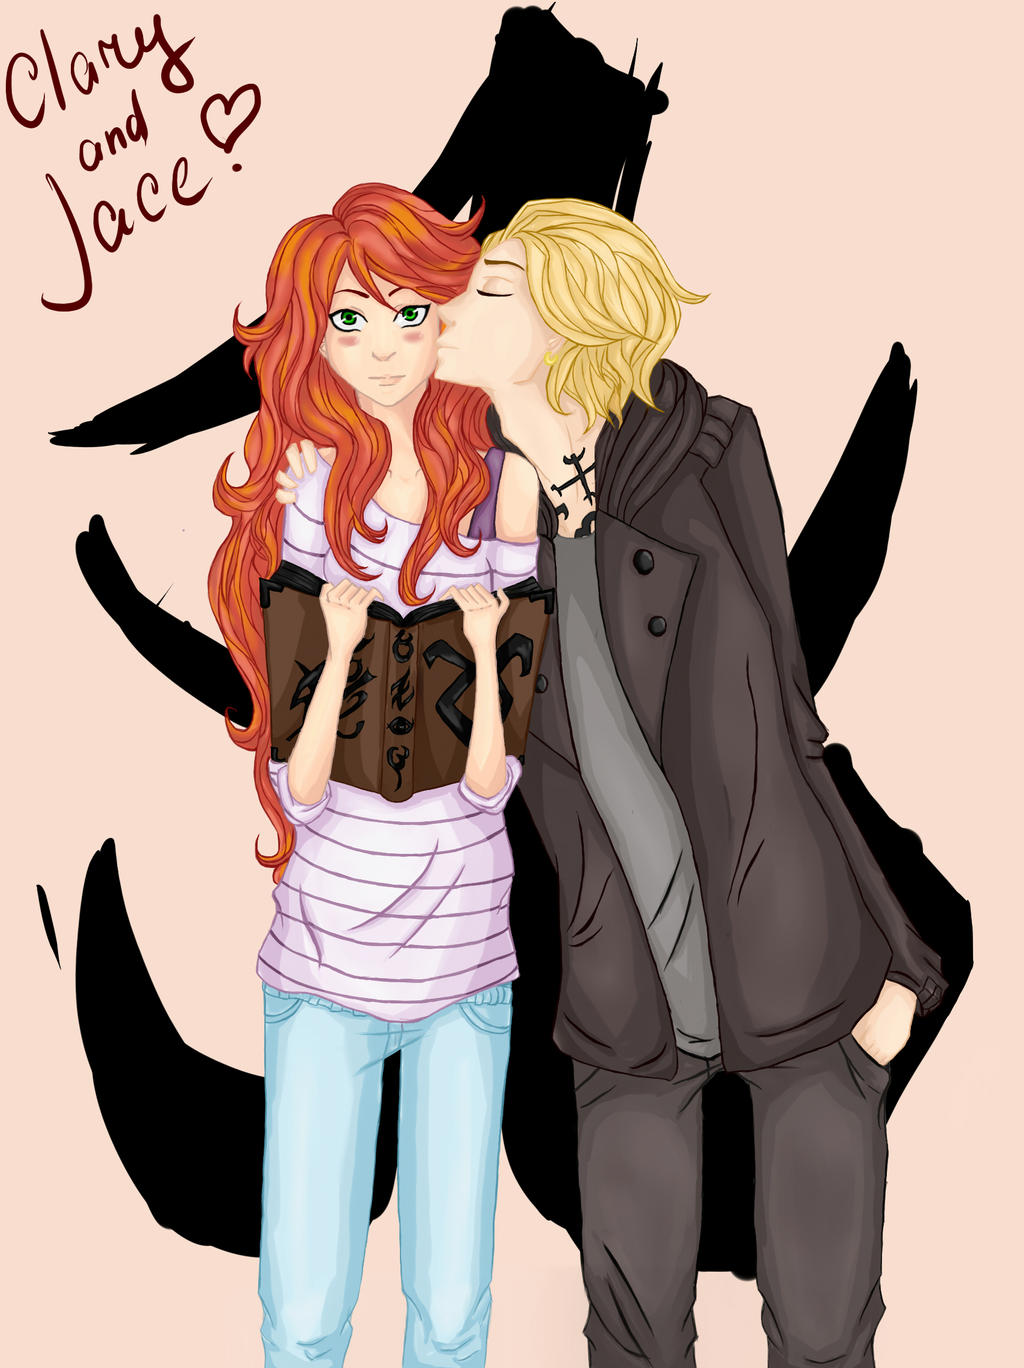 Jace and Clary - Art Trade by lalenca on DeviantArt  |Jace And Clary Fan Art Tumblr